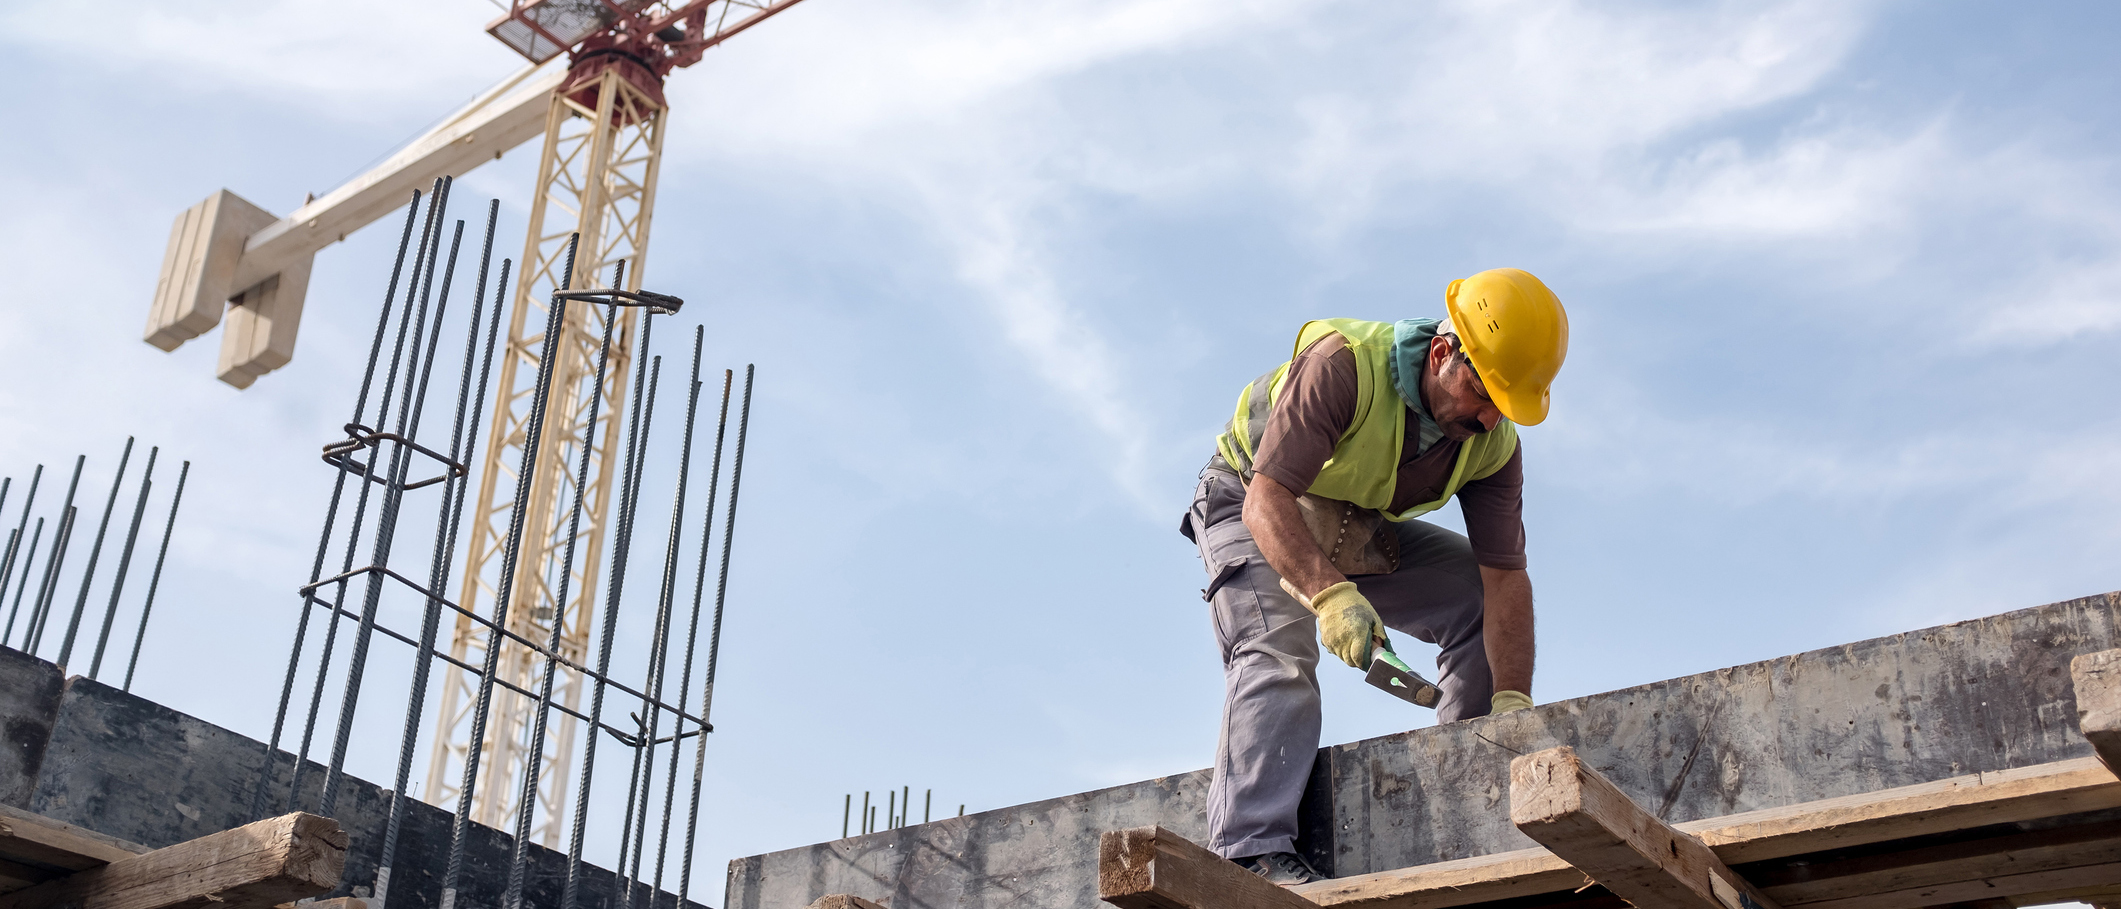 A worker on a construction site.